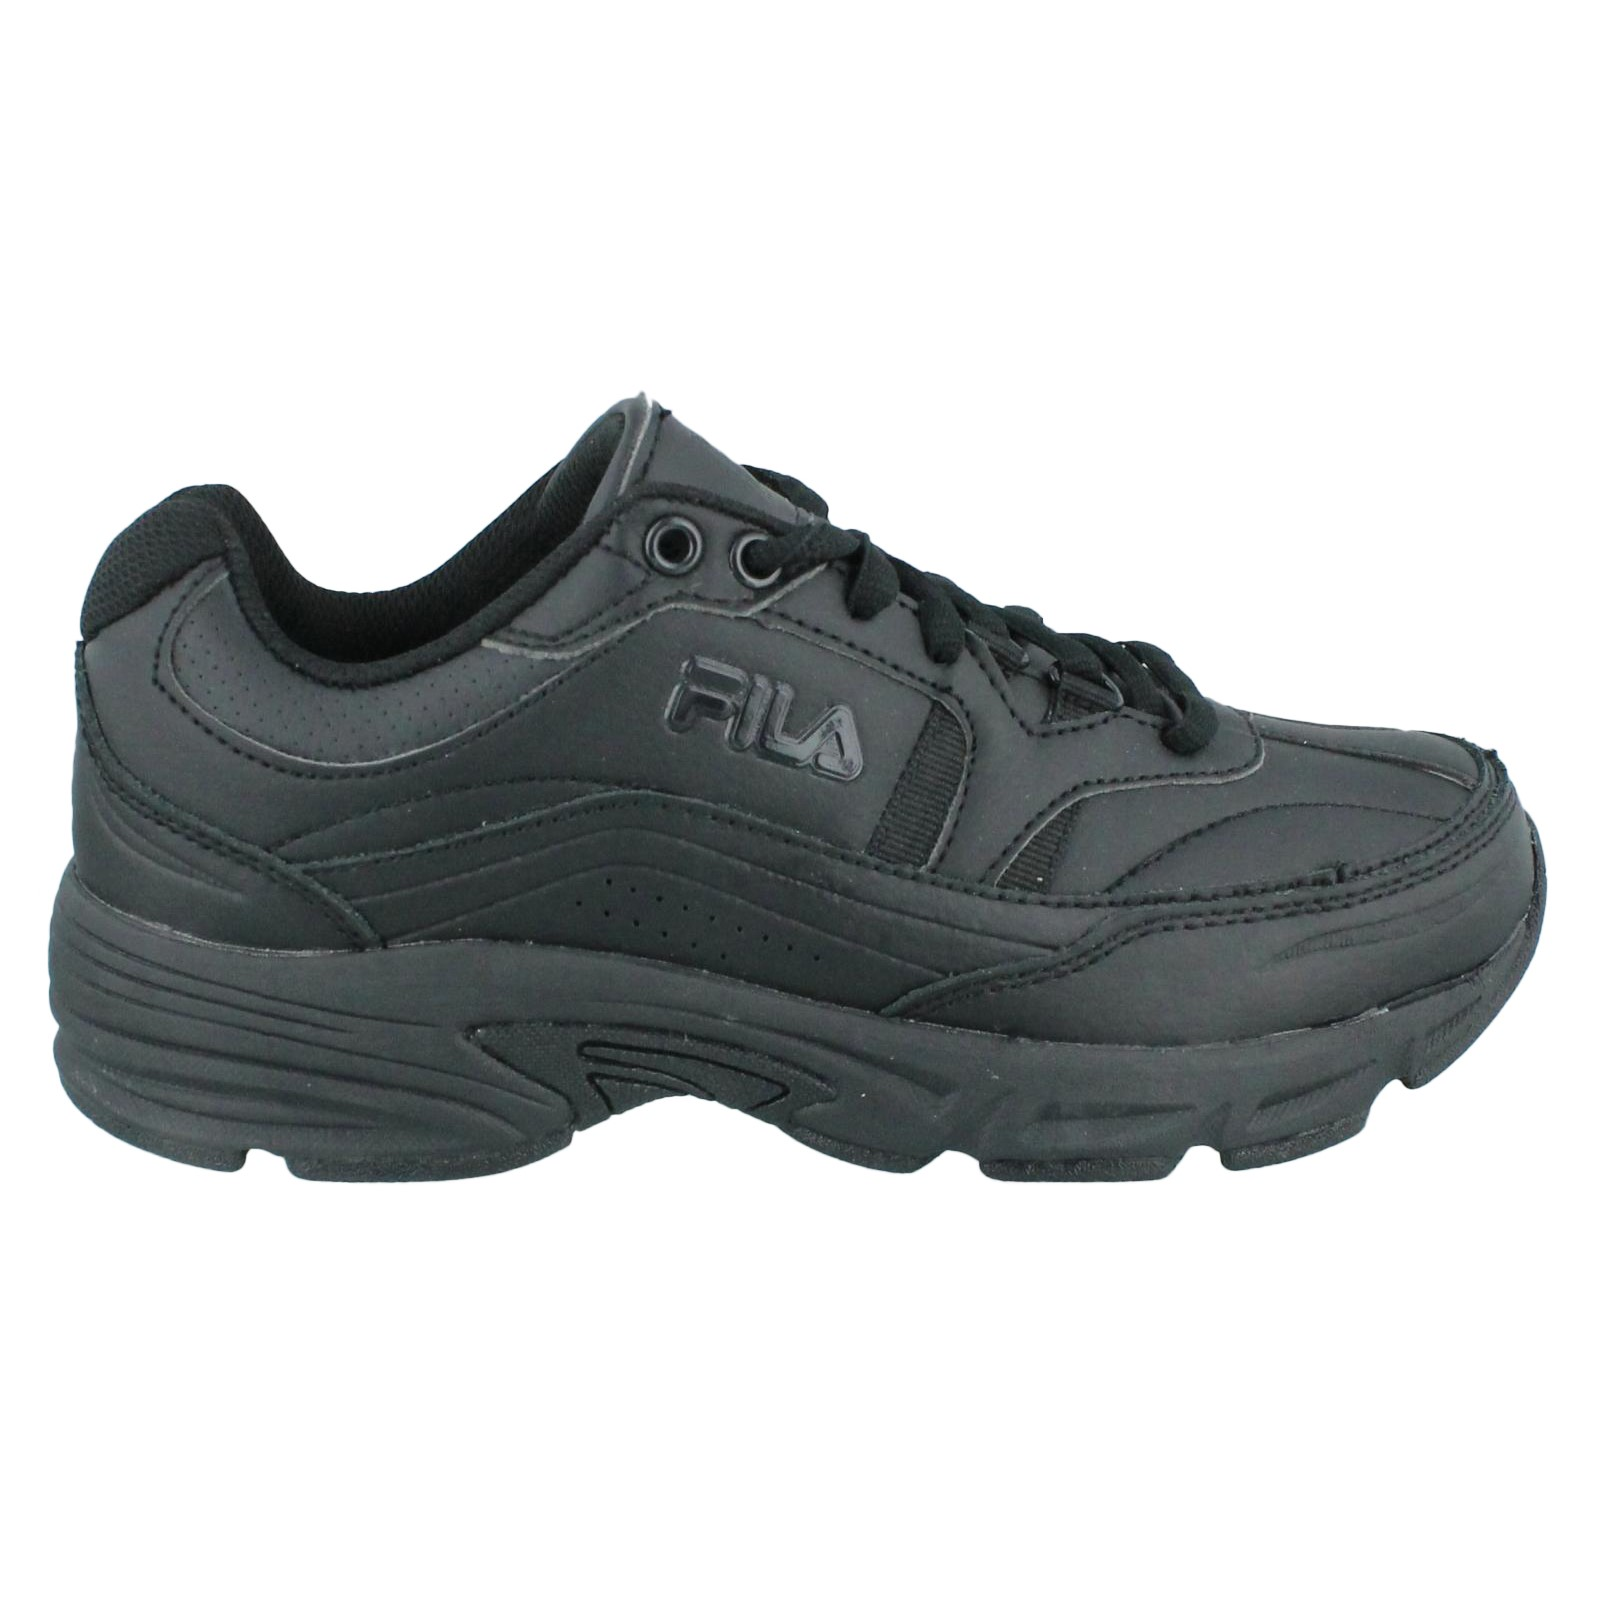 Men's Fila, Workshift Memory foam wide width work Shoes